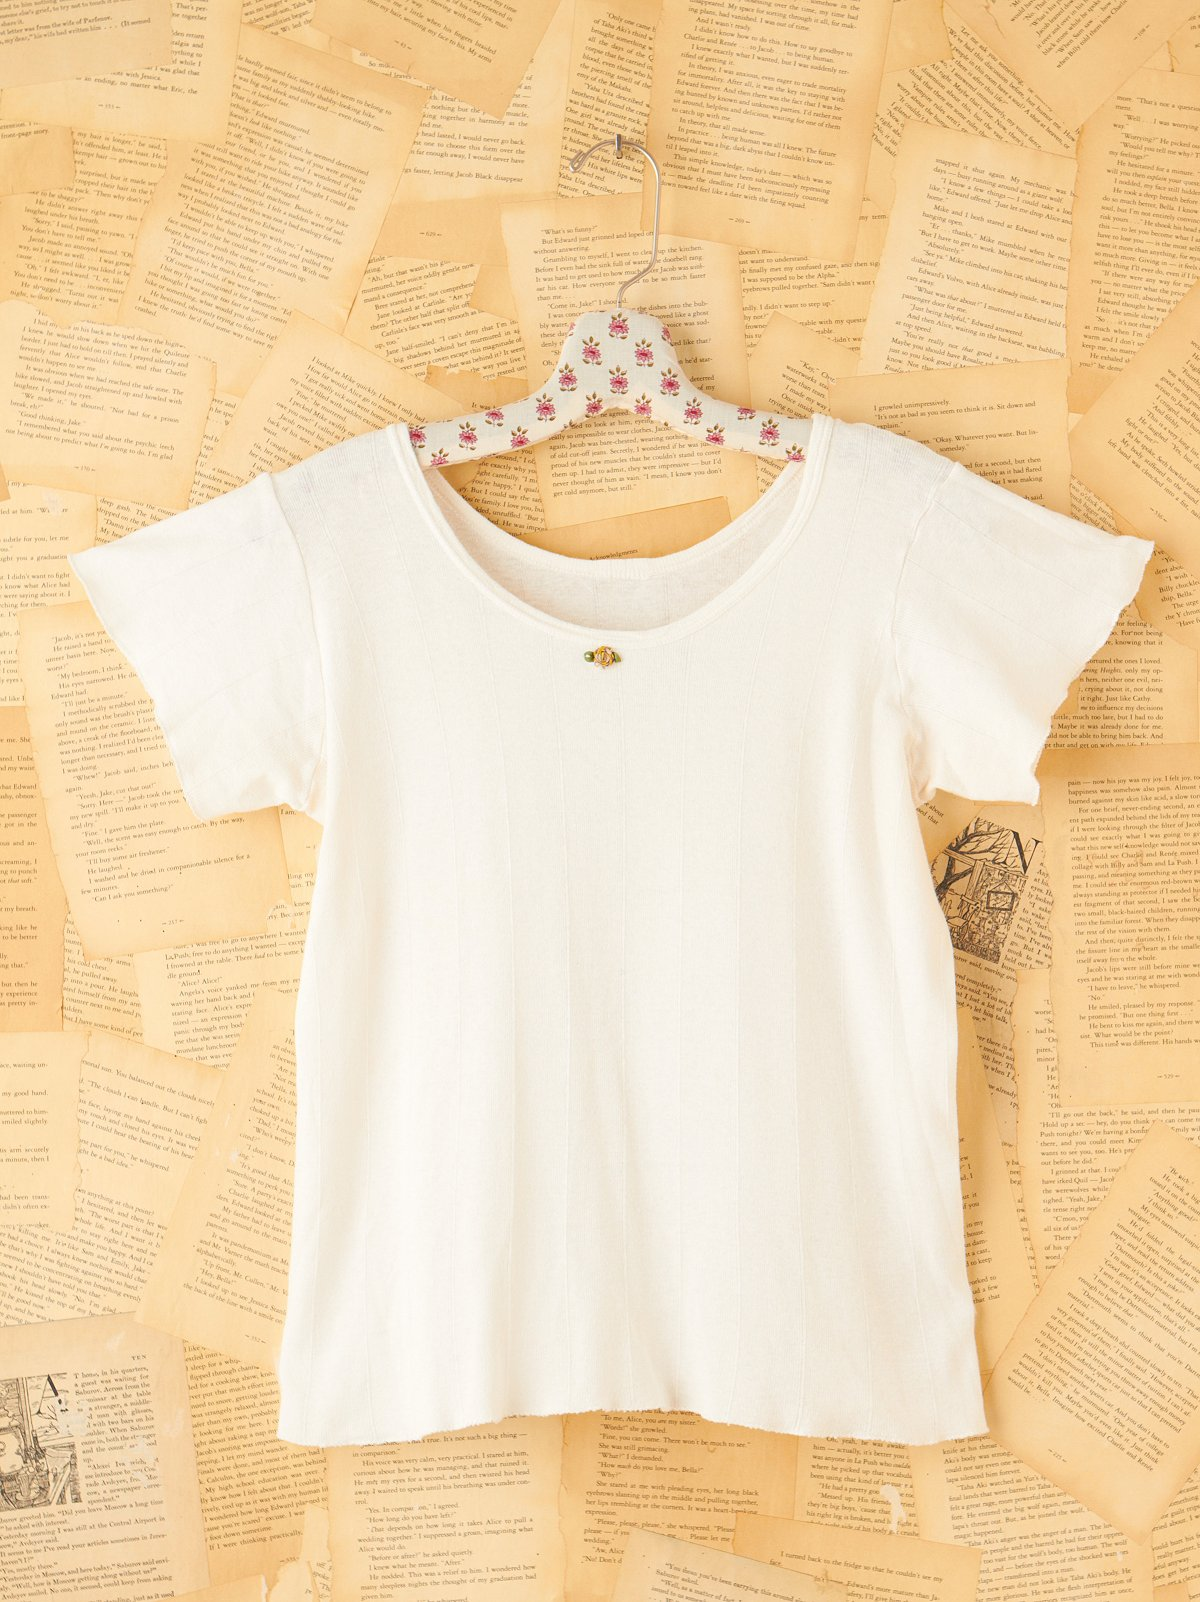 Vintage White Angel T-Shirt with Flower Embroidery